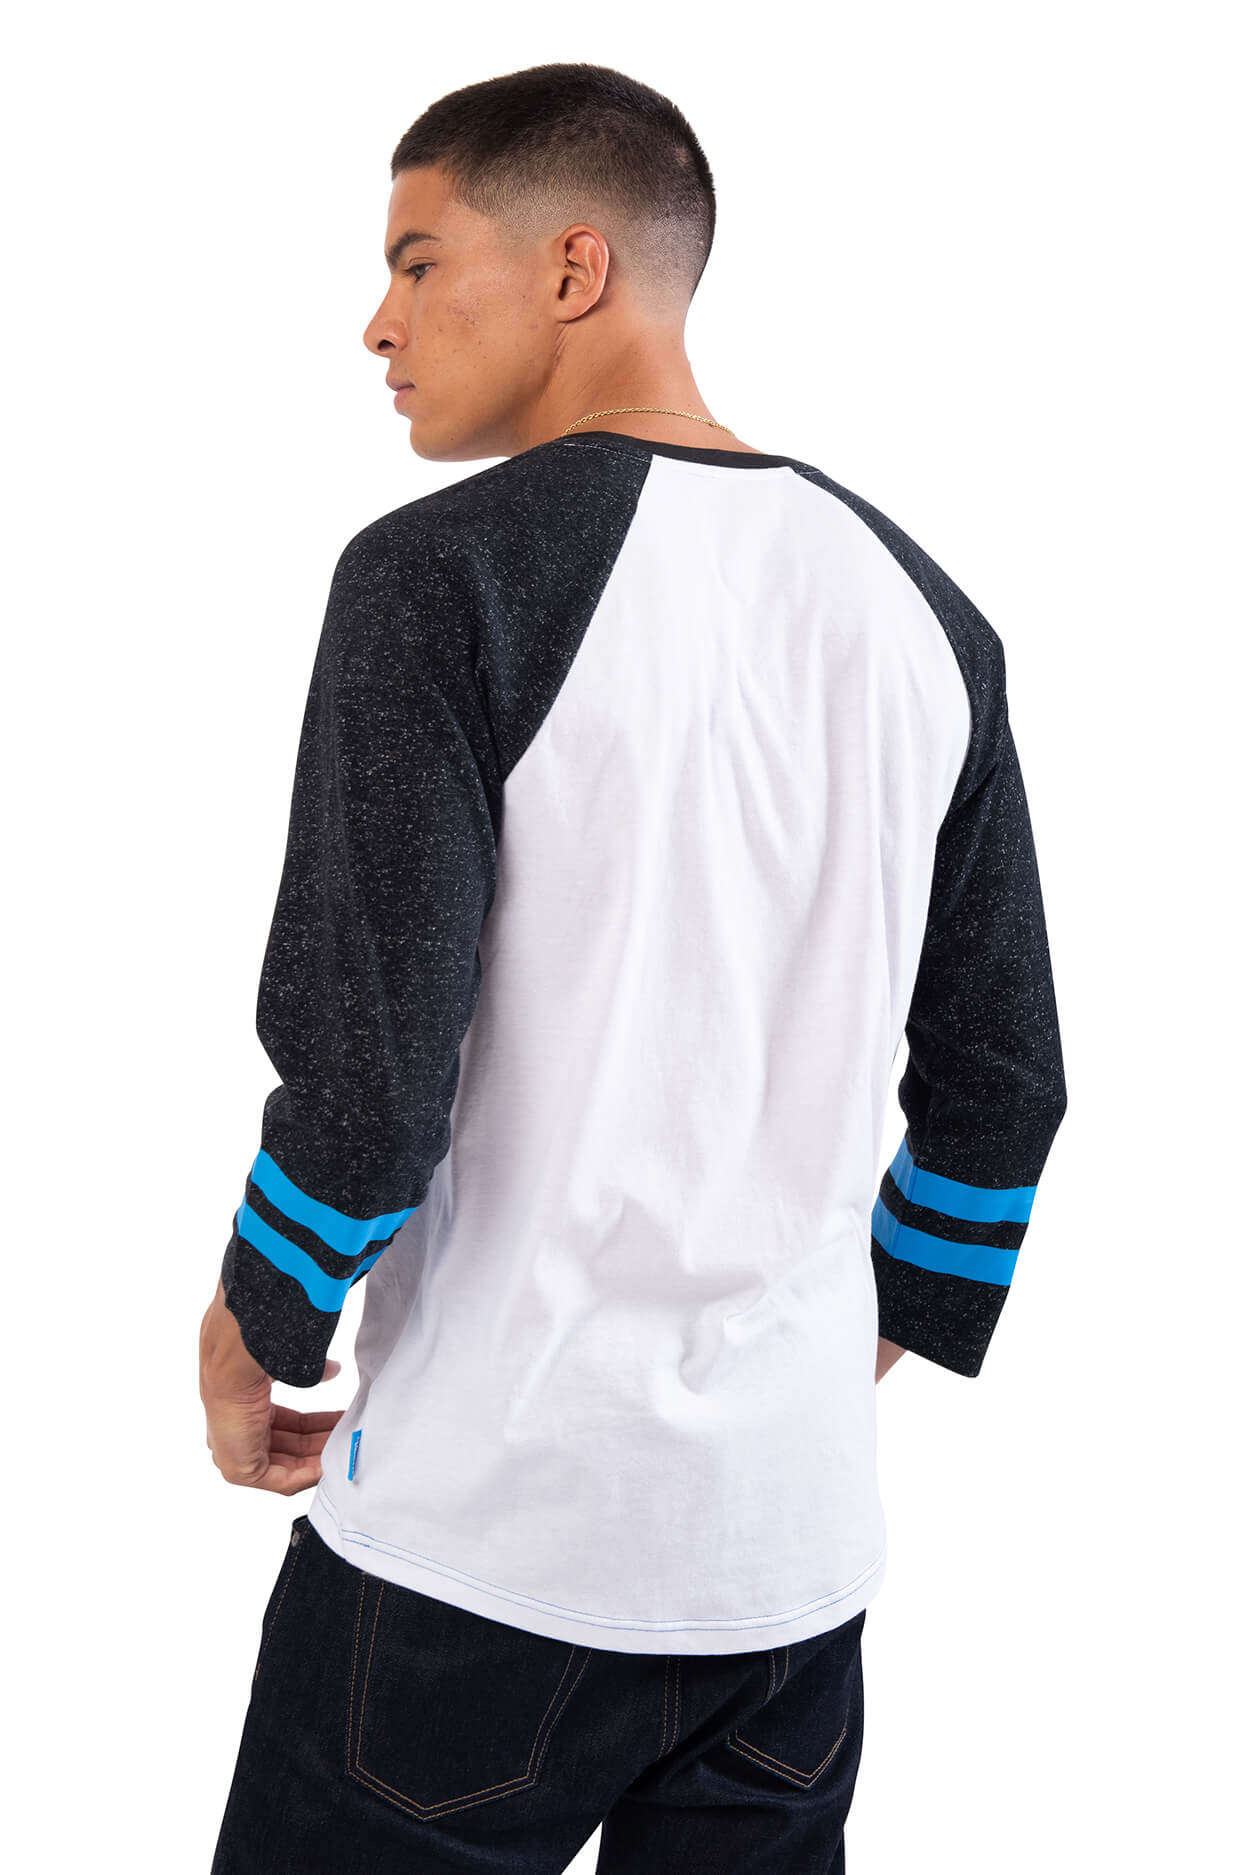 NFL Carolina Panthers Men's Baseball Tee|Carolina Panthers